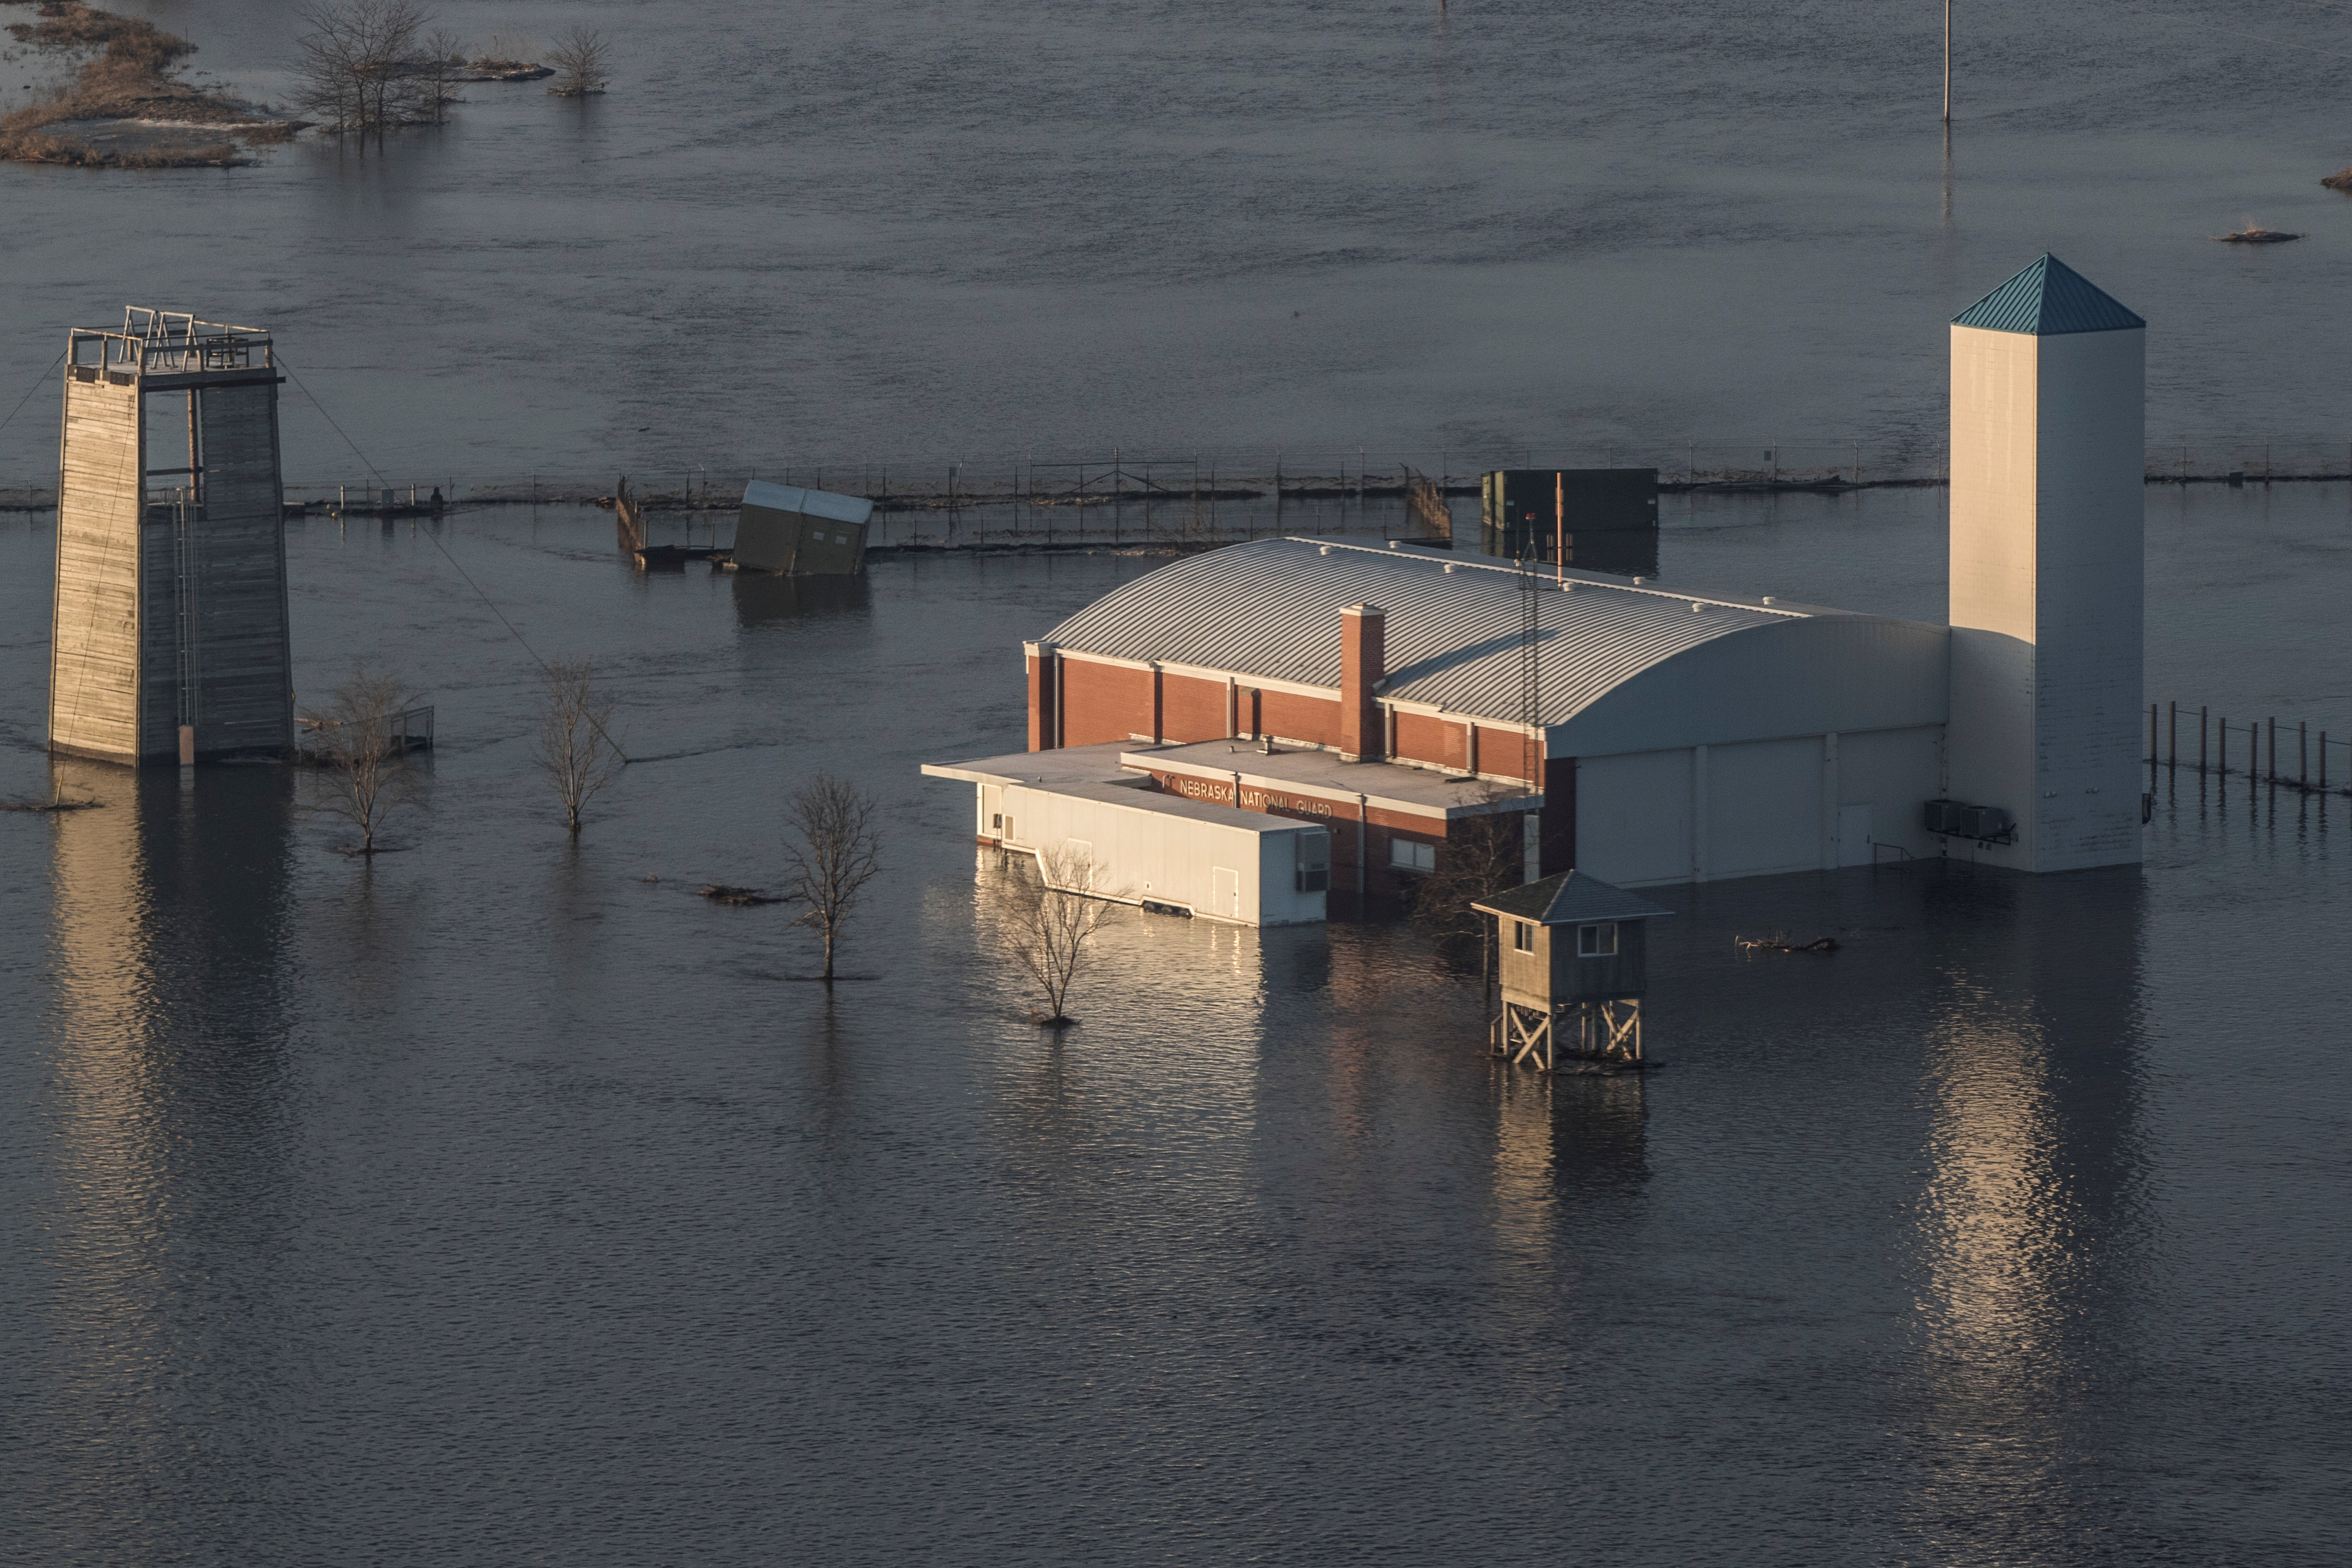 Flooded Camp Ashland Army National Guard facility is seen in this aerial photo taken in Ashland, Nebraska, U.S., March 17, 2019.